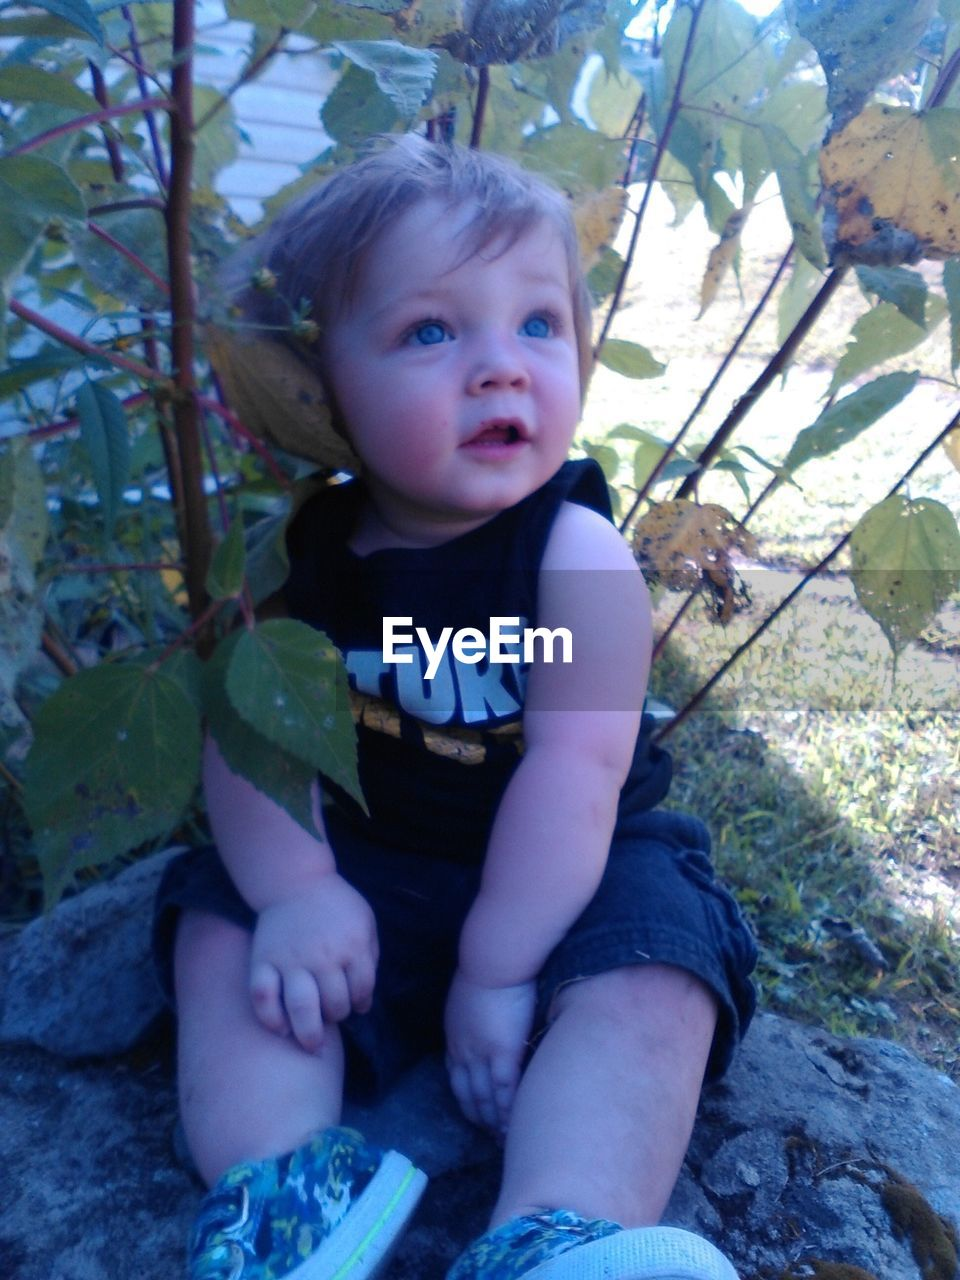 High Angle View Of Baby Looking Up While Sitting By Plant On Field